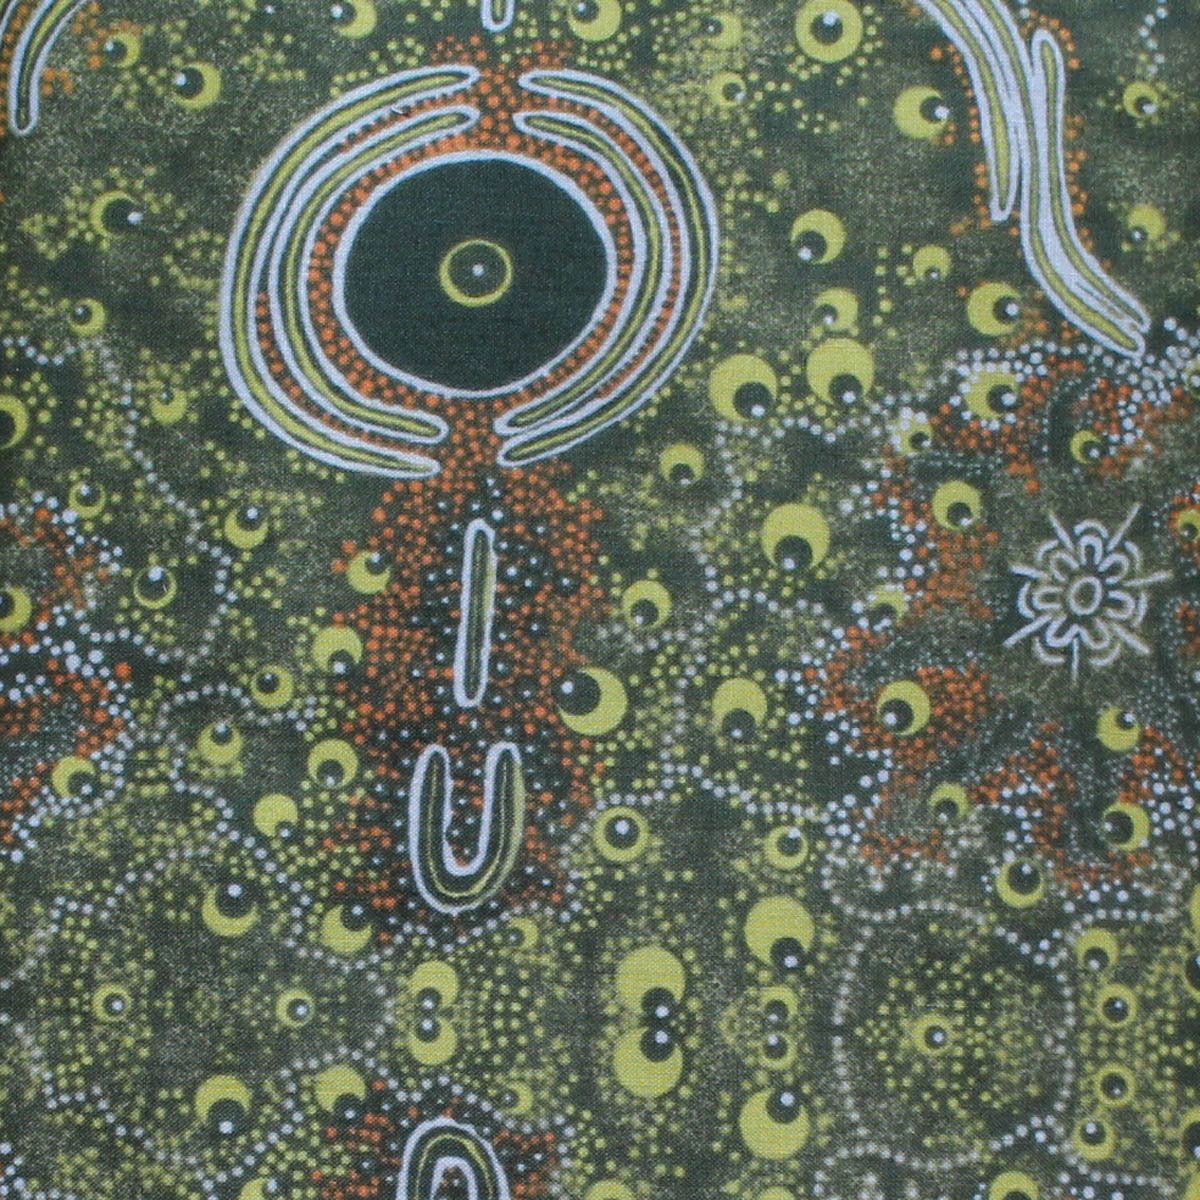 DREAMTIME KNOWLEDGE GREEN by Aboriginal Artist TREPHINA SULTAN